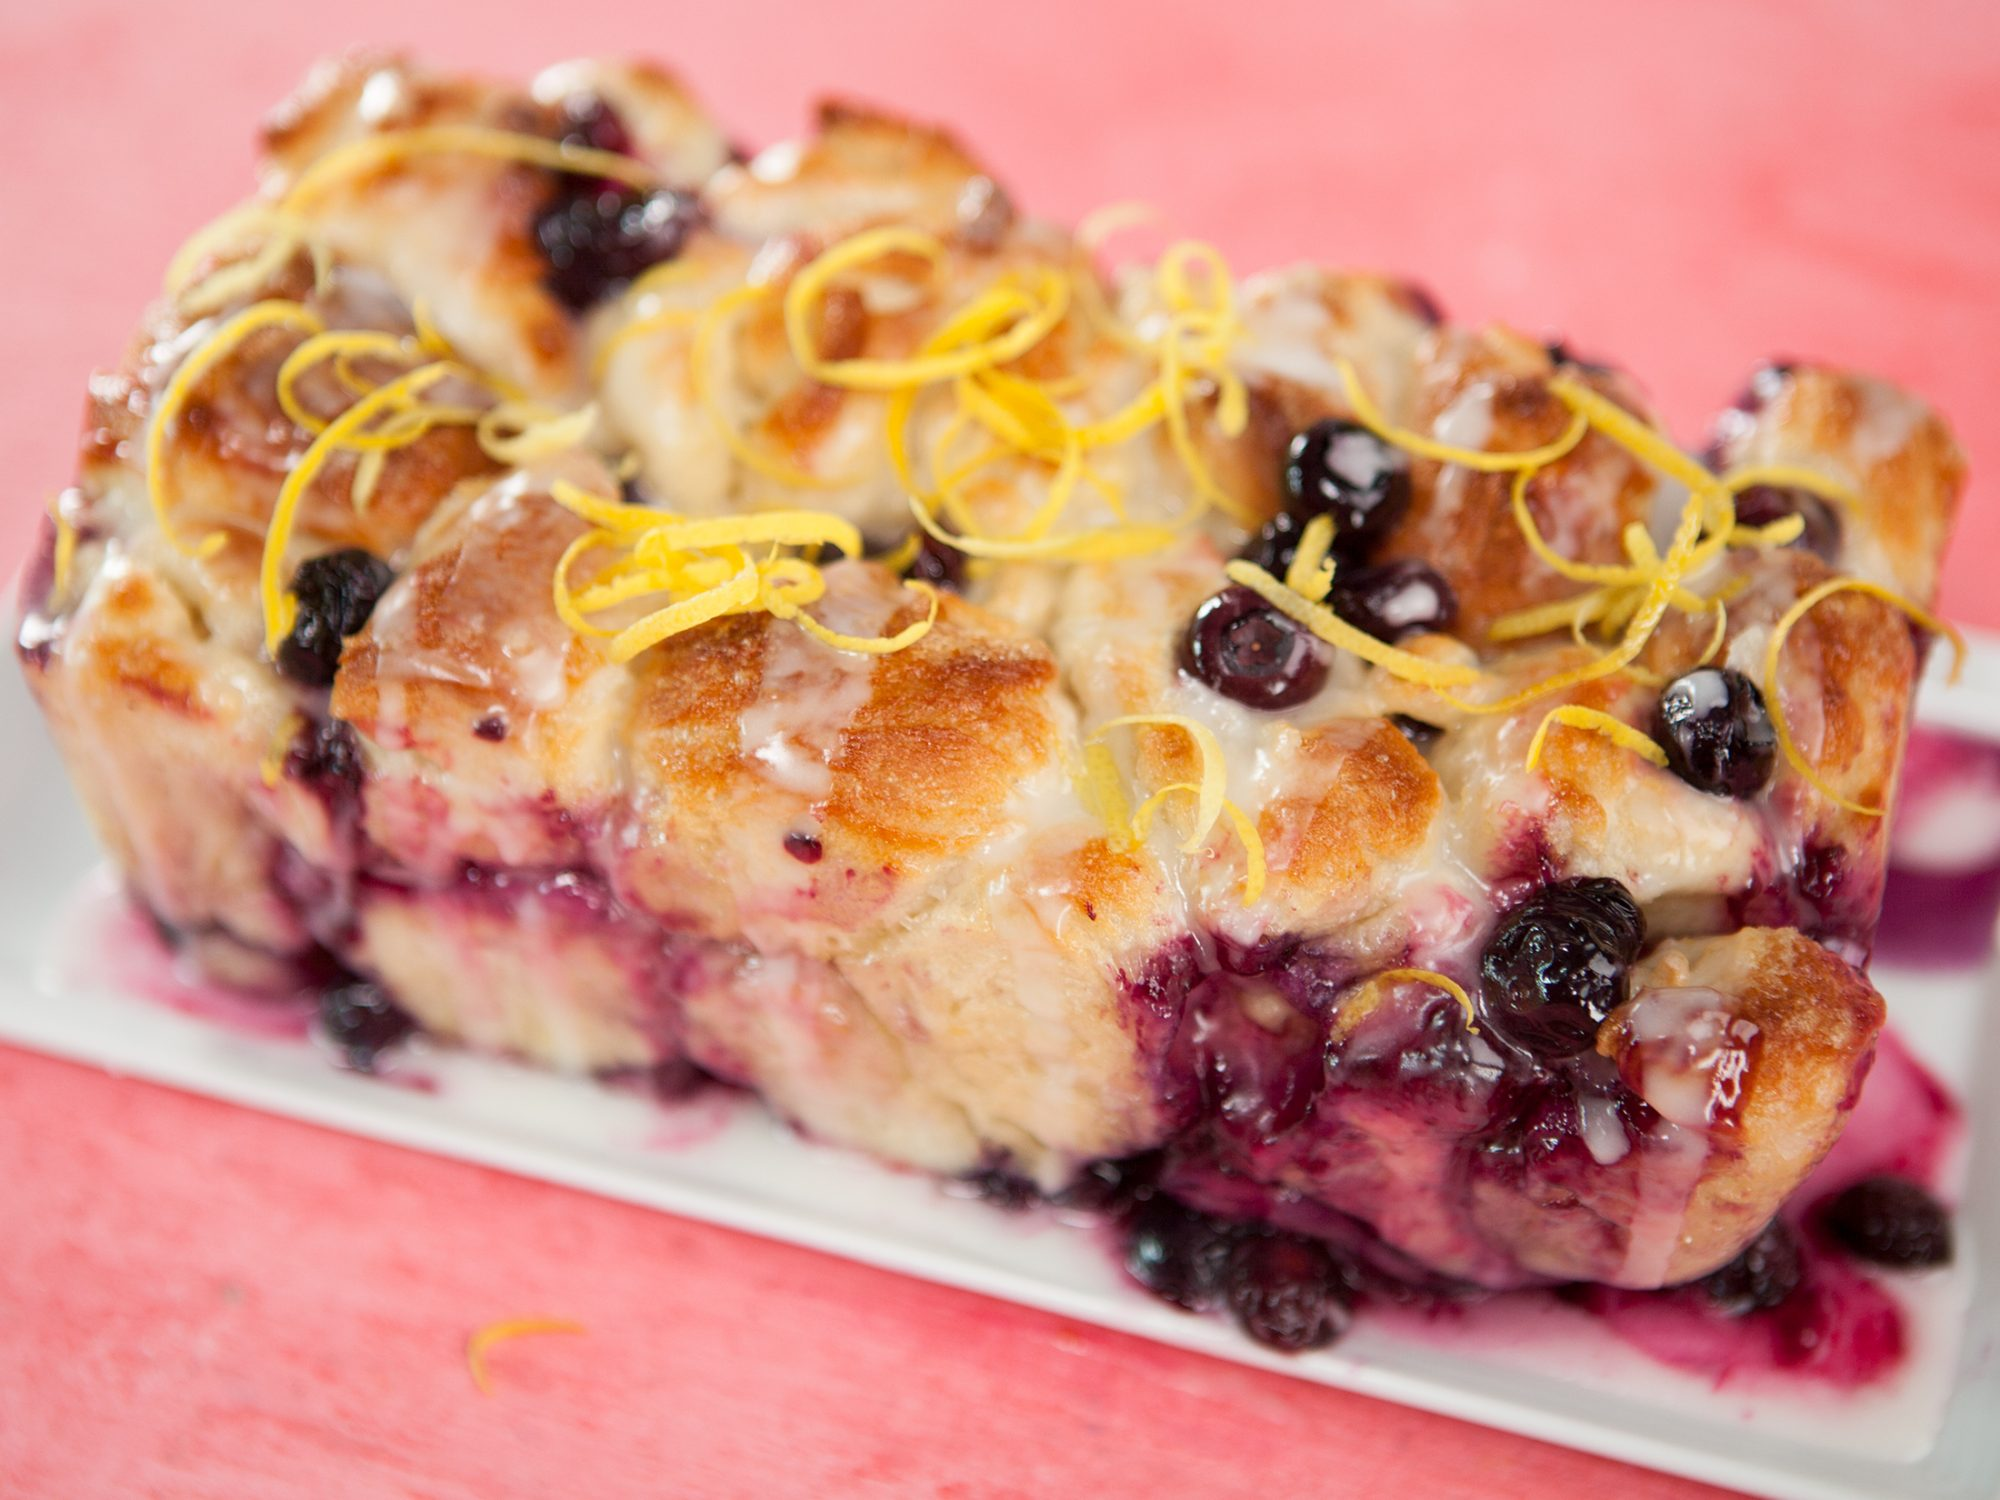 Blueberry Lemon Monkey Bread